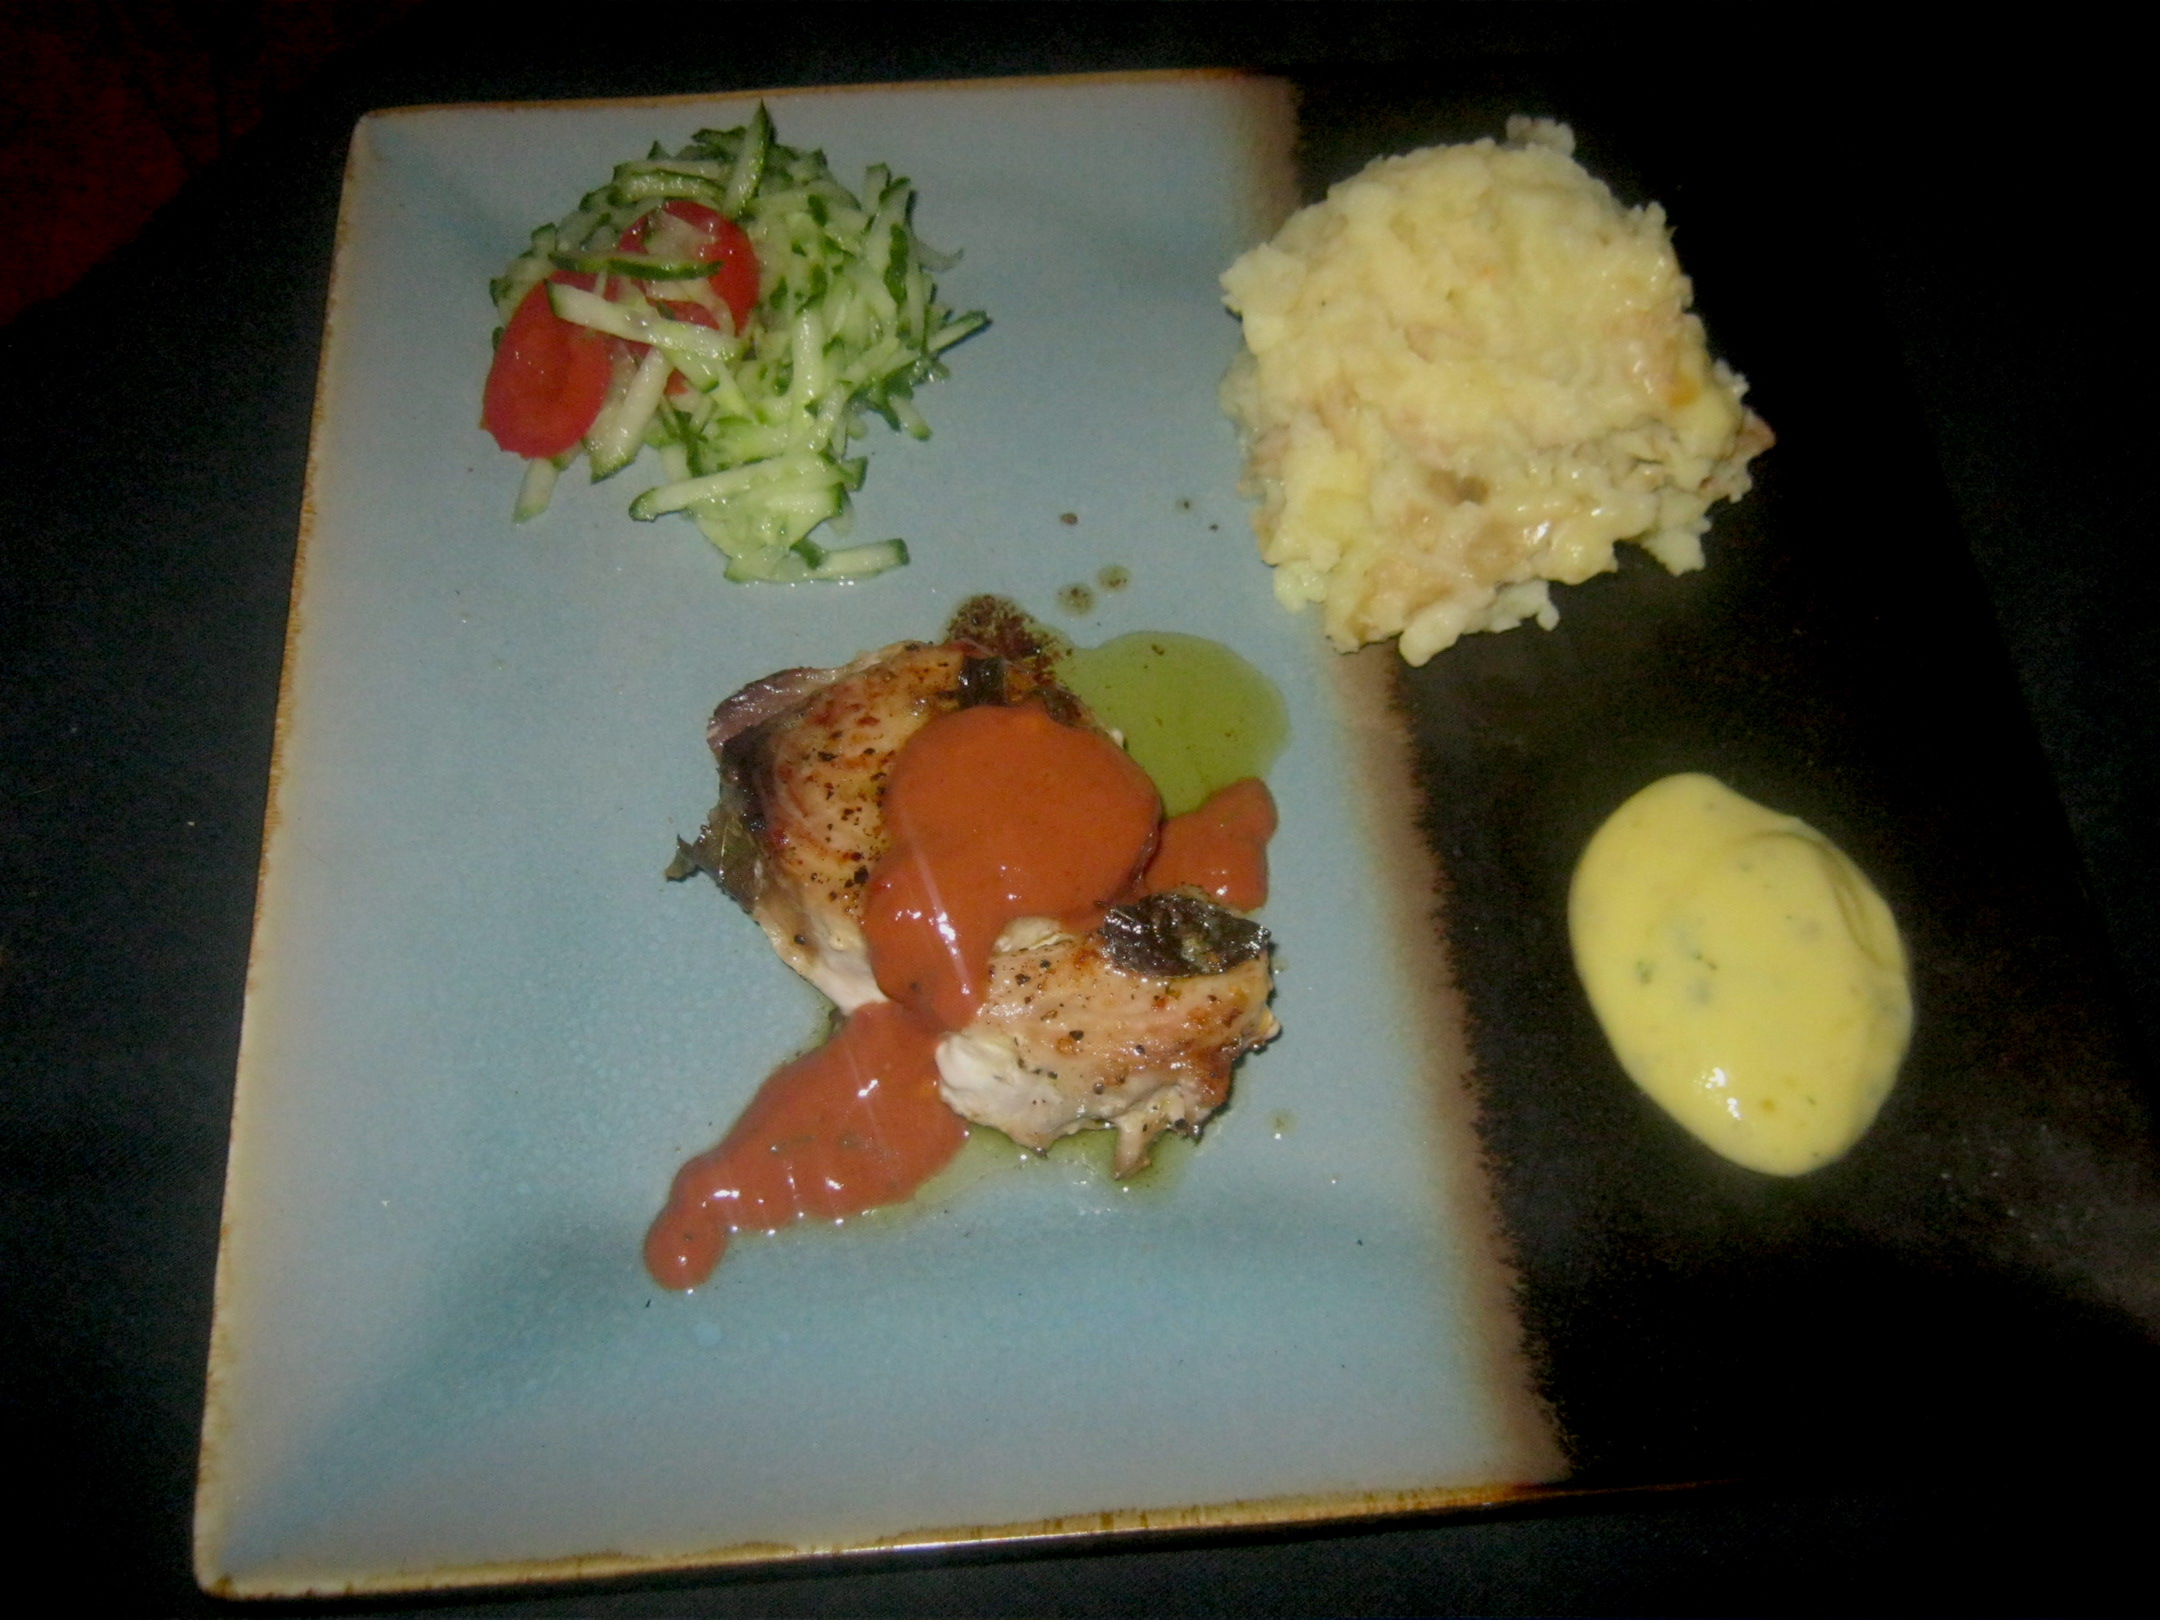 Pan fried marlin steak with mashed potato, homemade herb mayonaise, sauce andalouse and tomato and cucumber salad